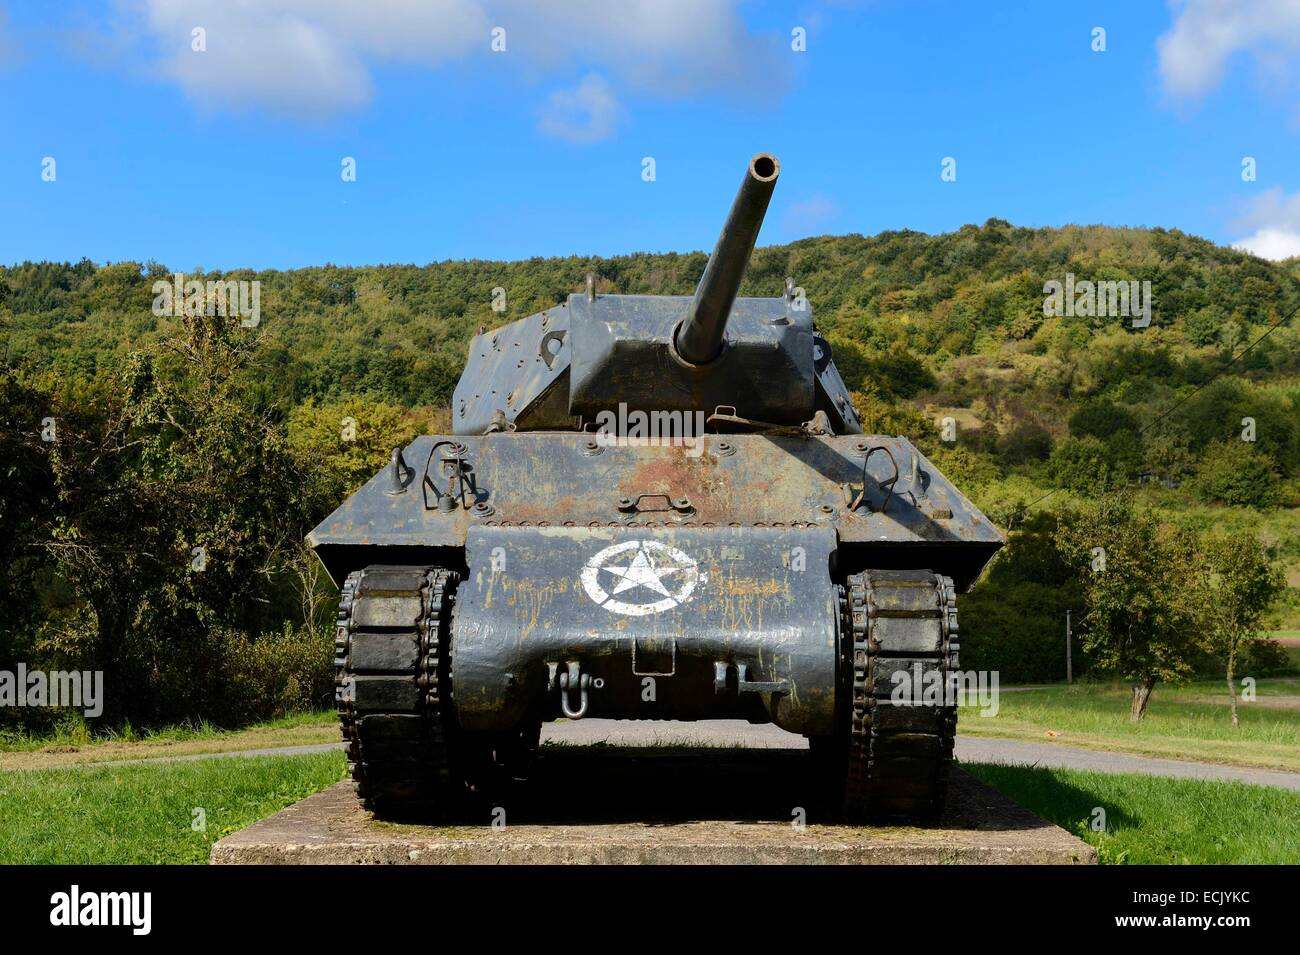 France, Moselle, Veckring, Maginot Line, U.S. tank in front of the hill of the Hackenberg Fortress - Stock Image